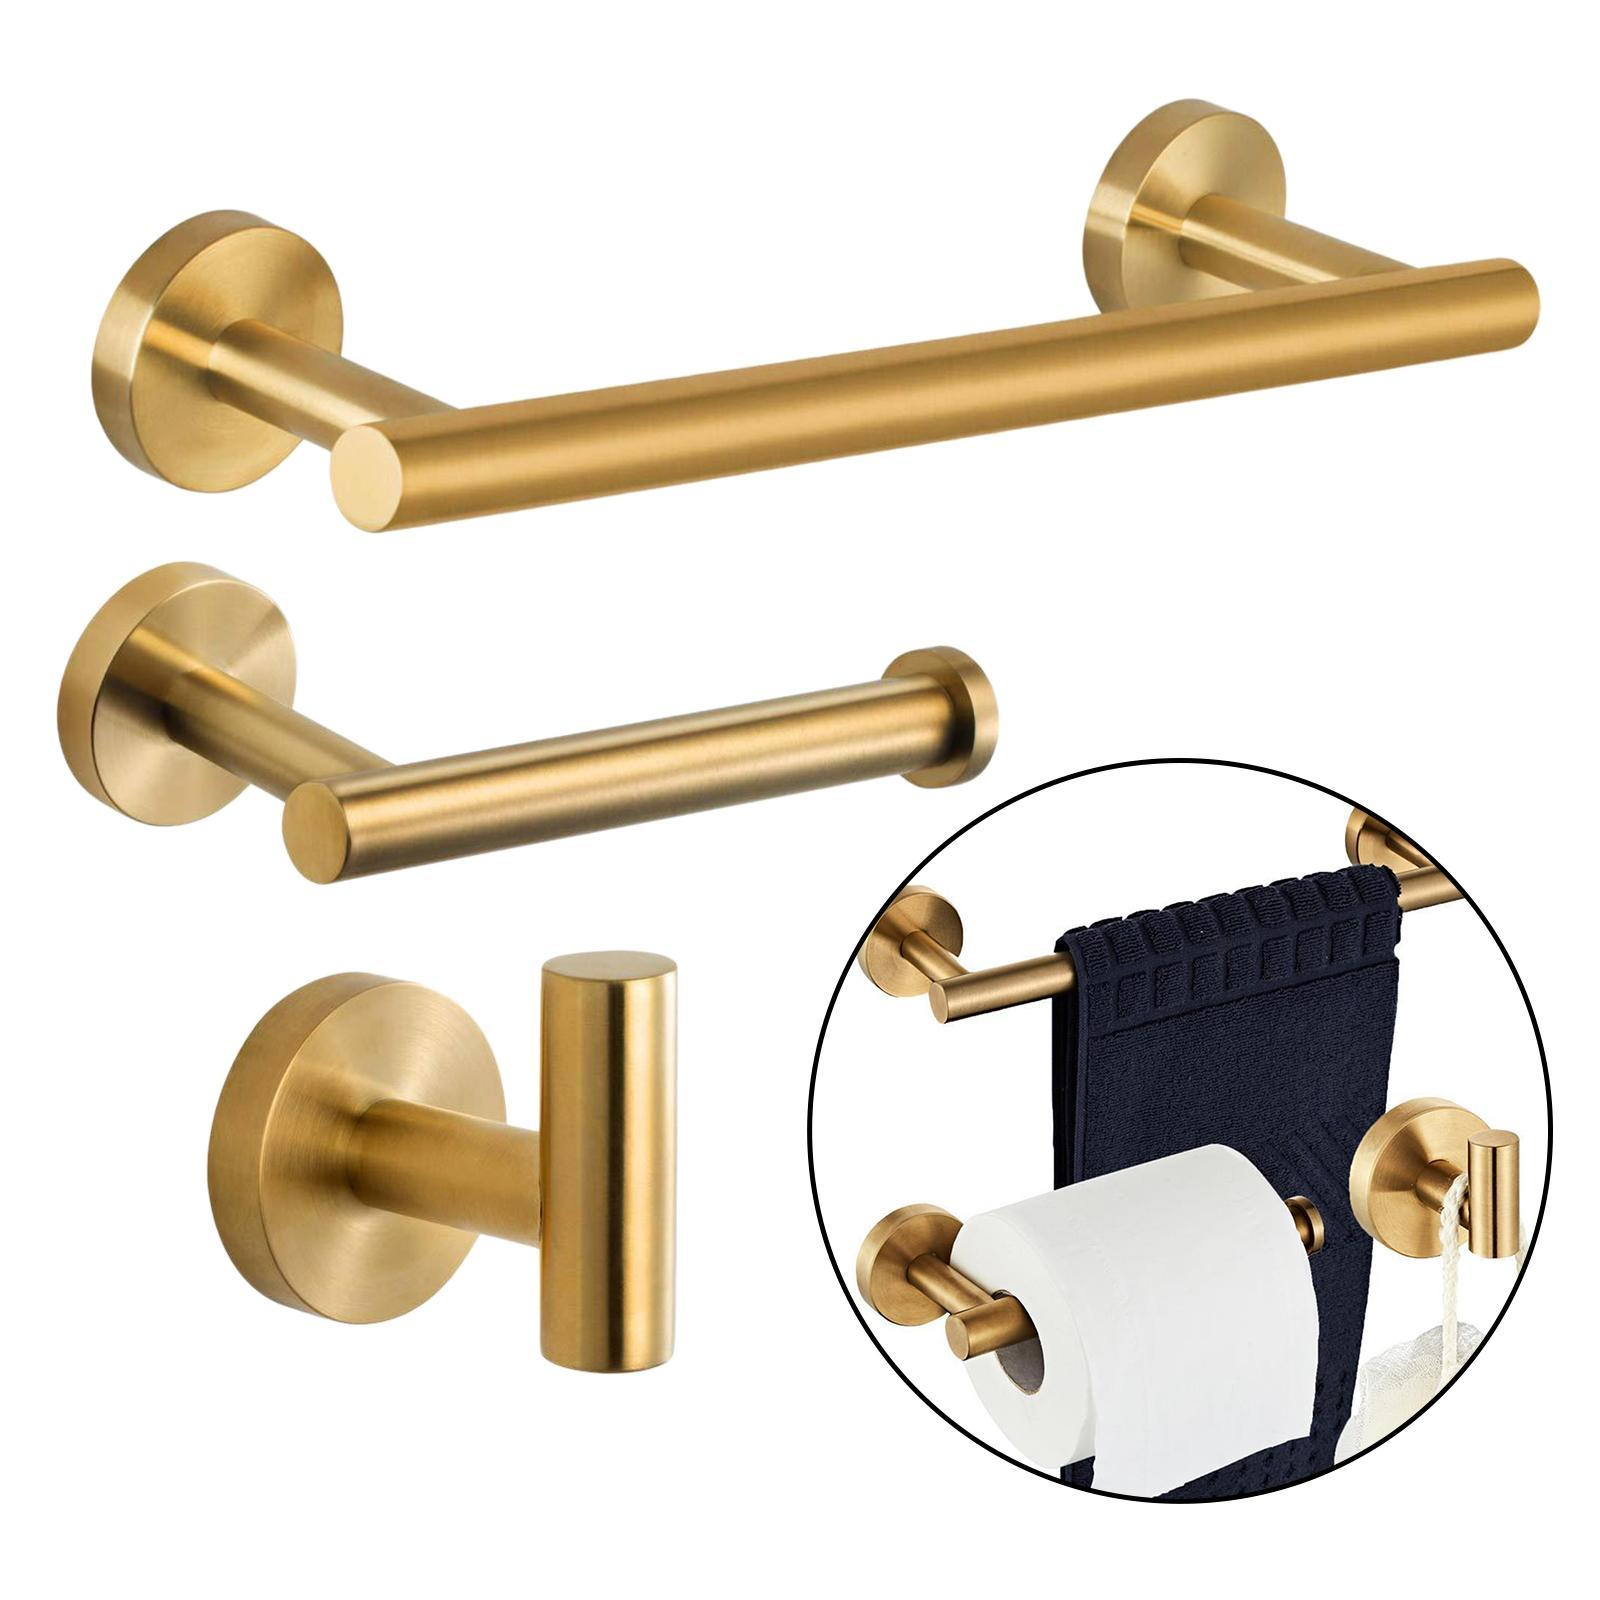 thumbnail 28 - 3x-Brushed-Robe-Hook-Toilet-Paper-Holder-12-034-Hand-Towel-Bar-Hardware-Set